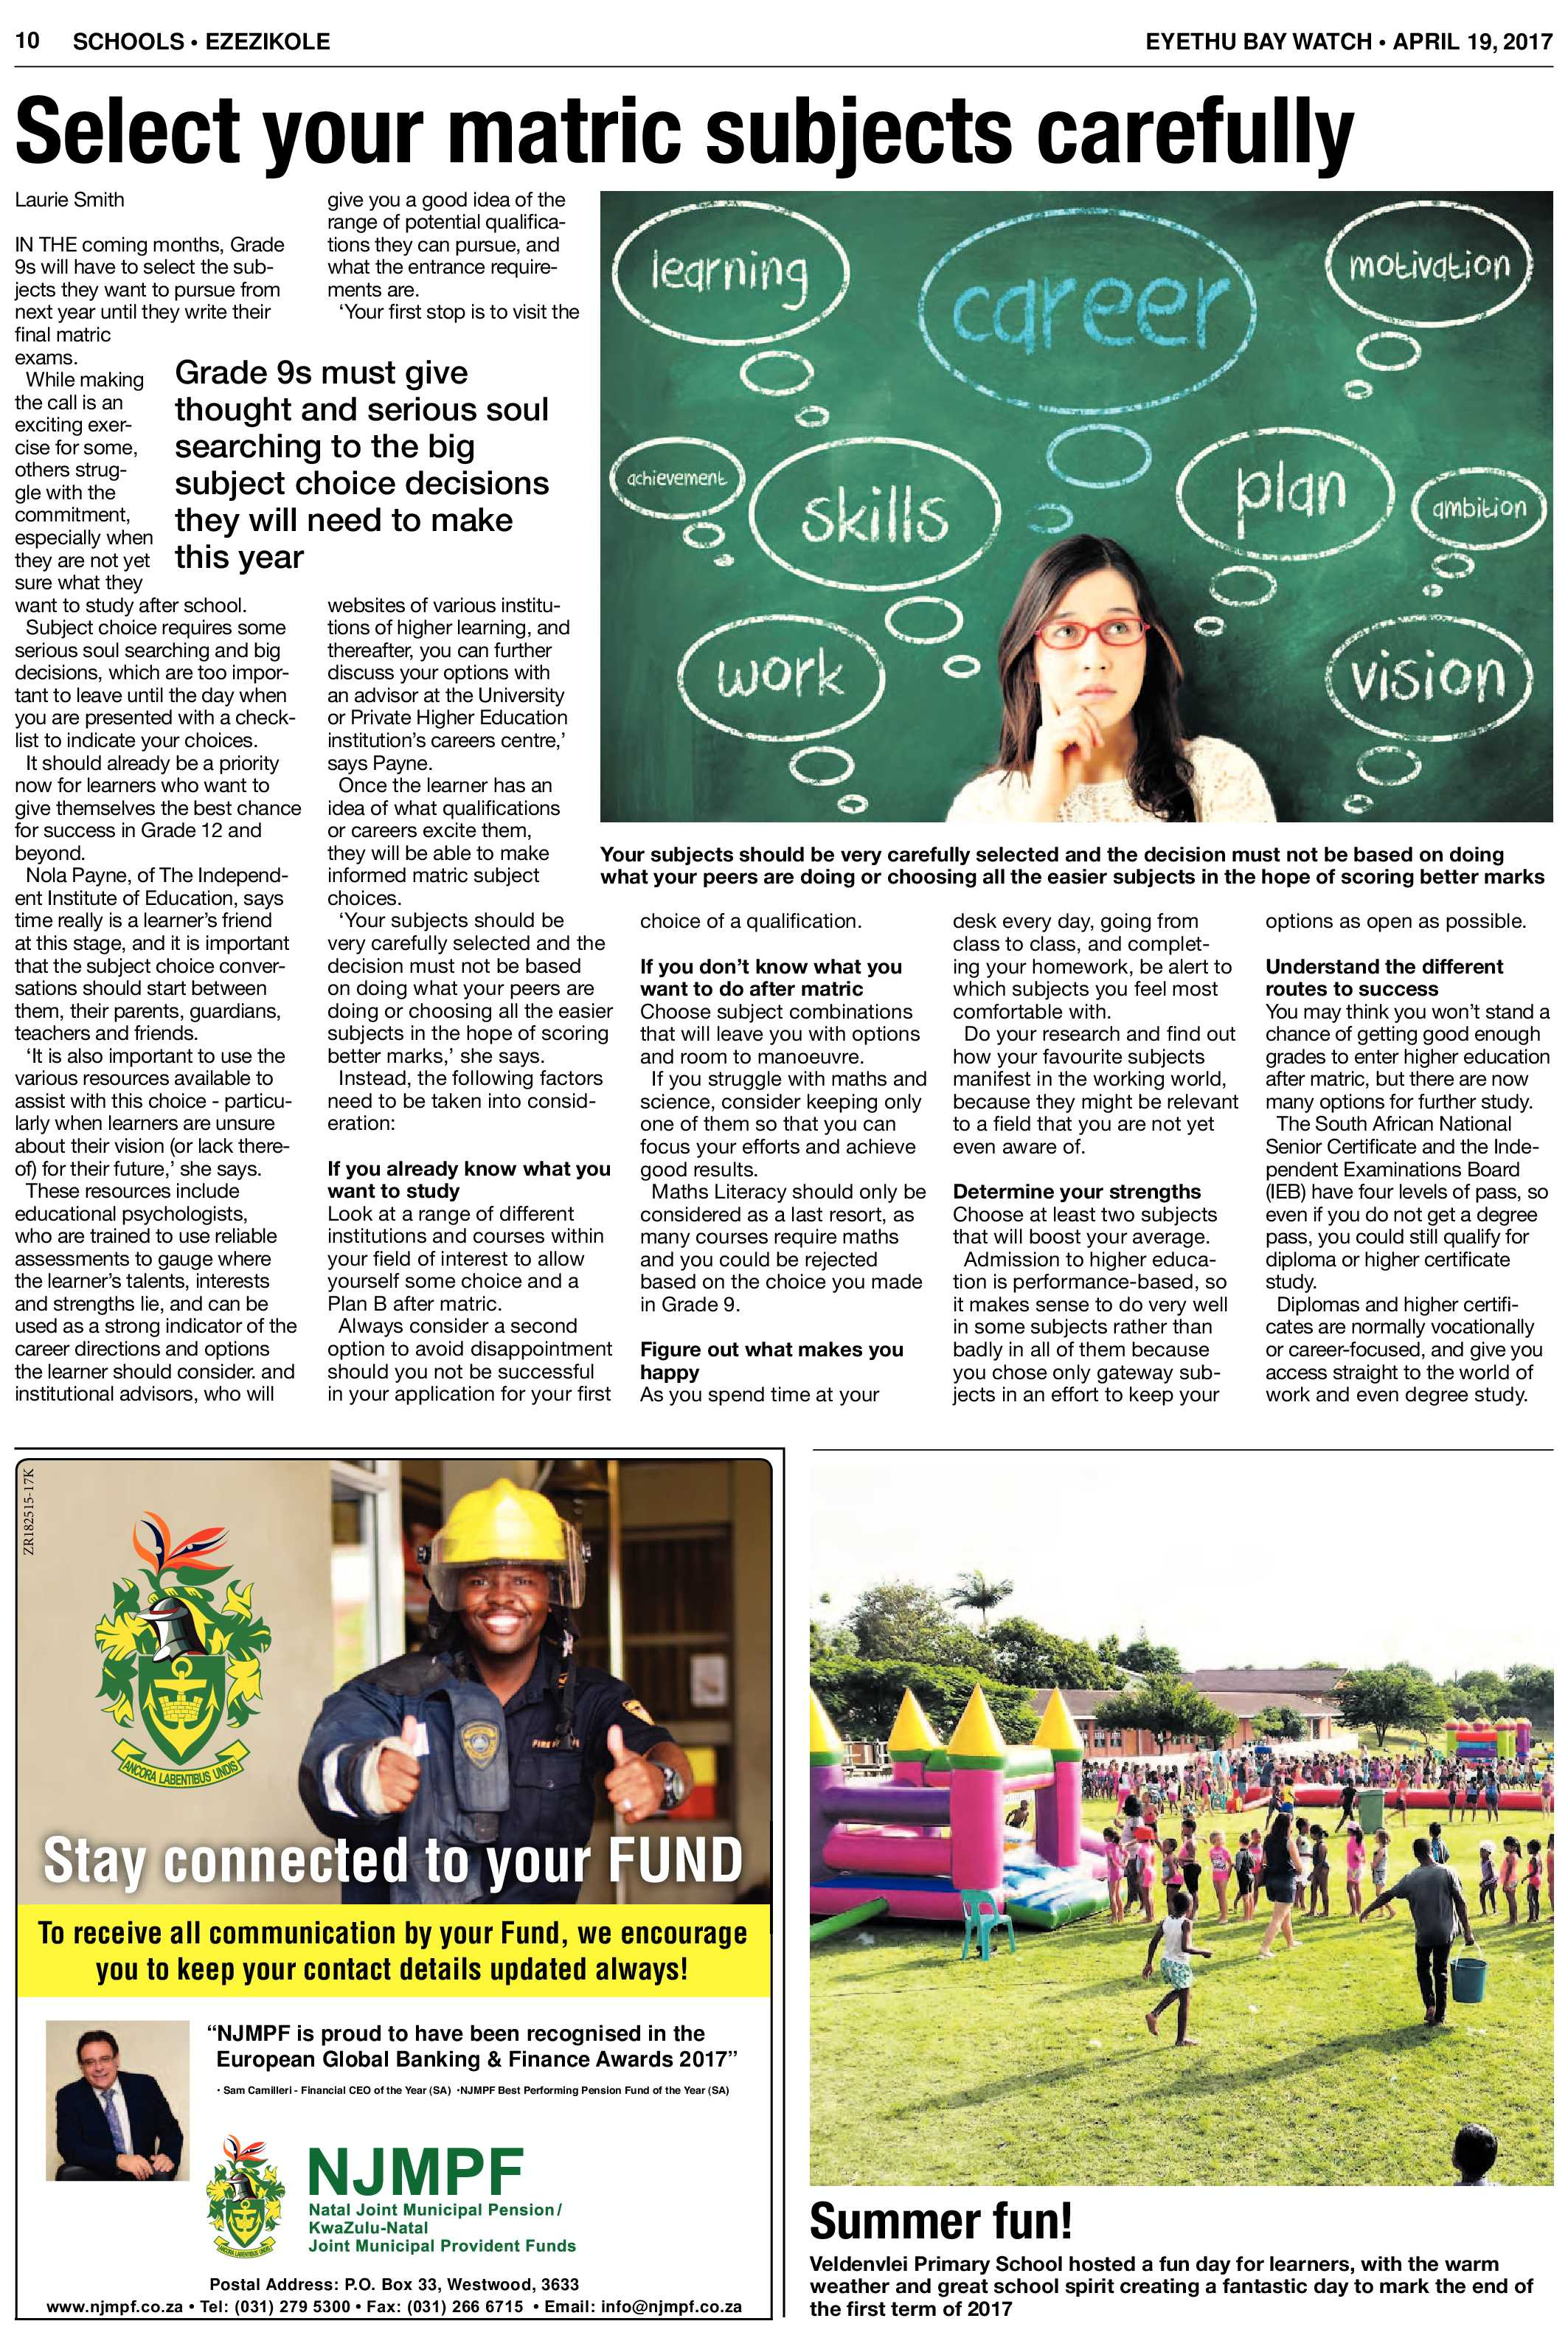 eyethu-baywatch-19-april-epapers-page-10